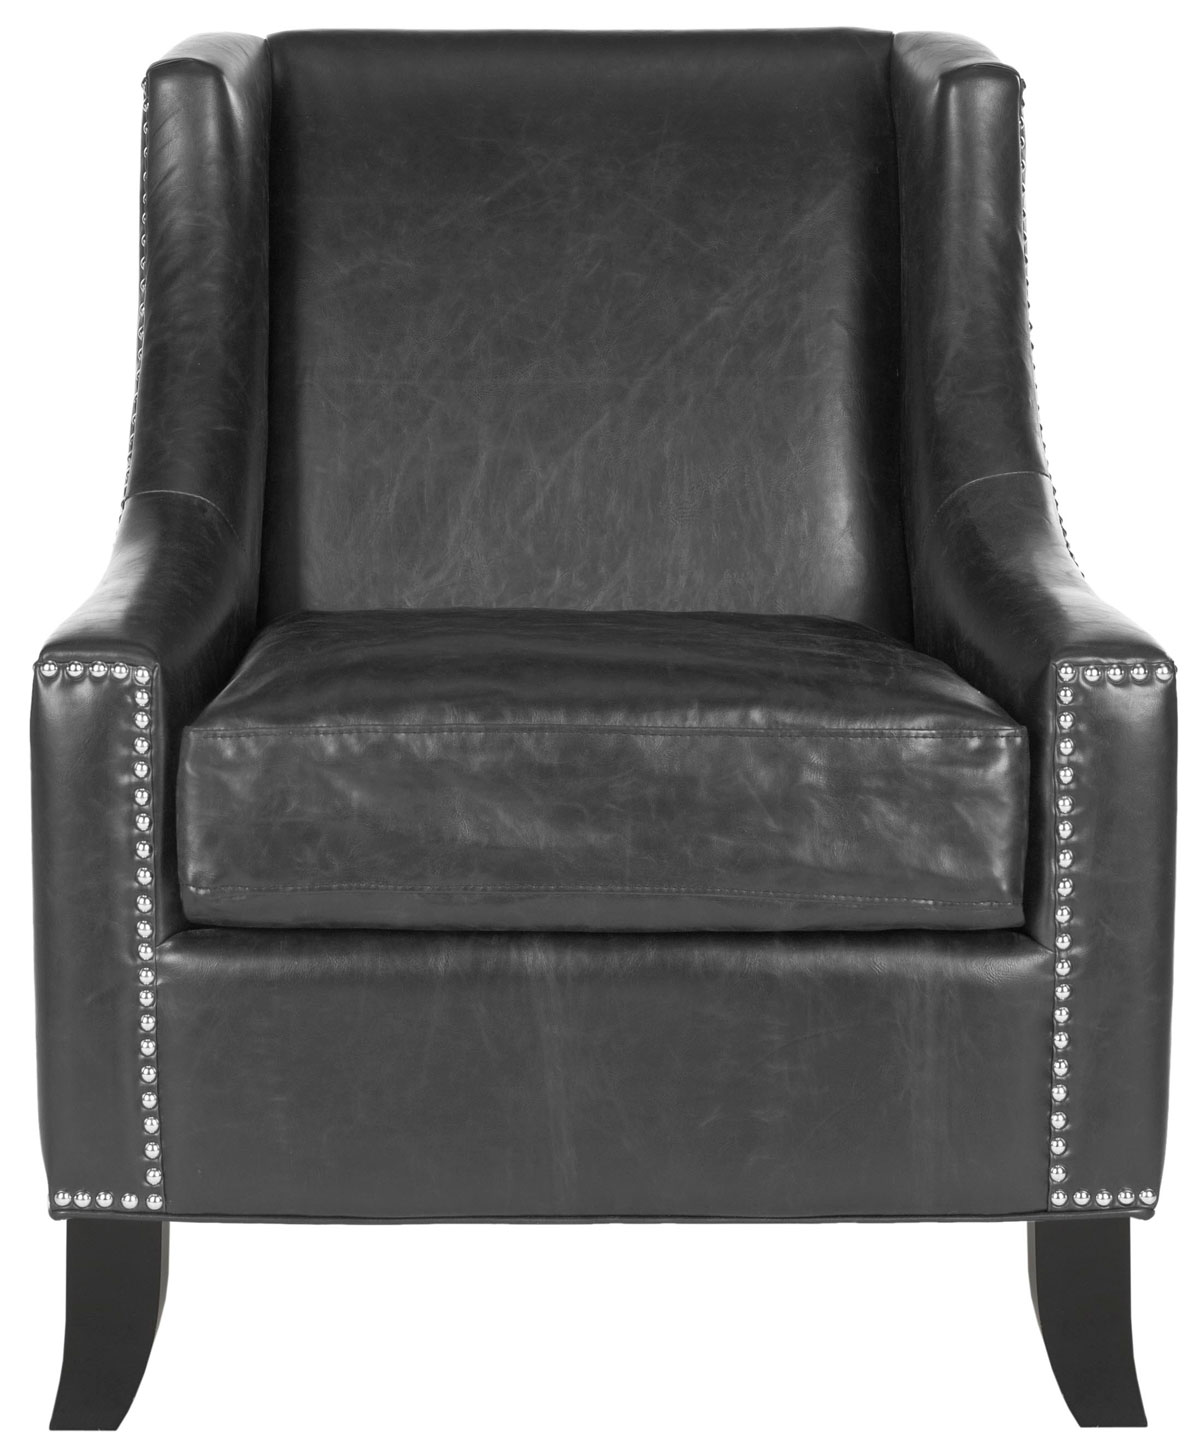 Mcr4733a Accent Chairs Furniture By Safavieh